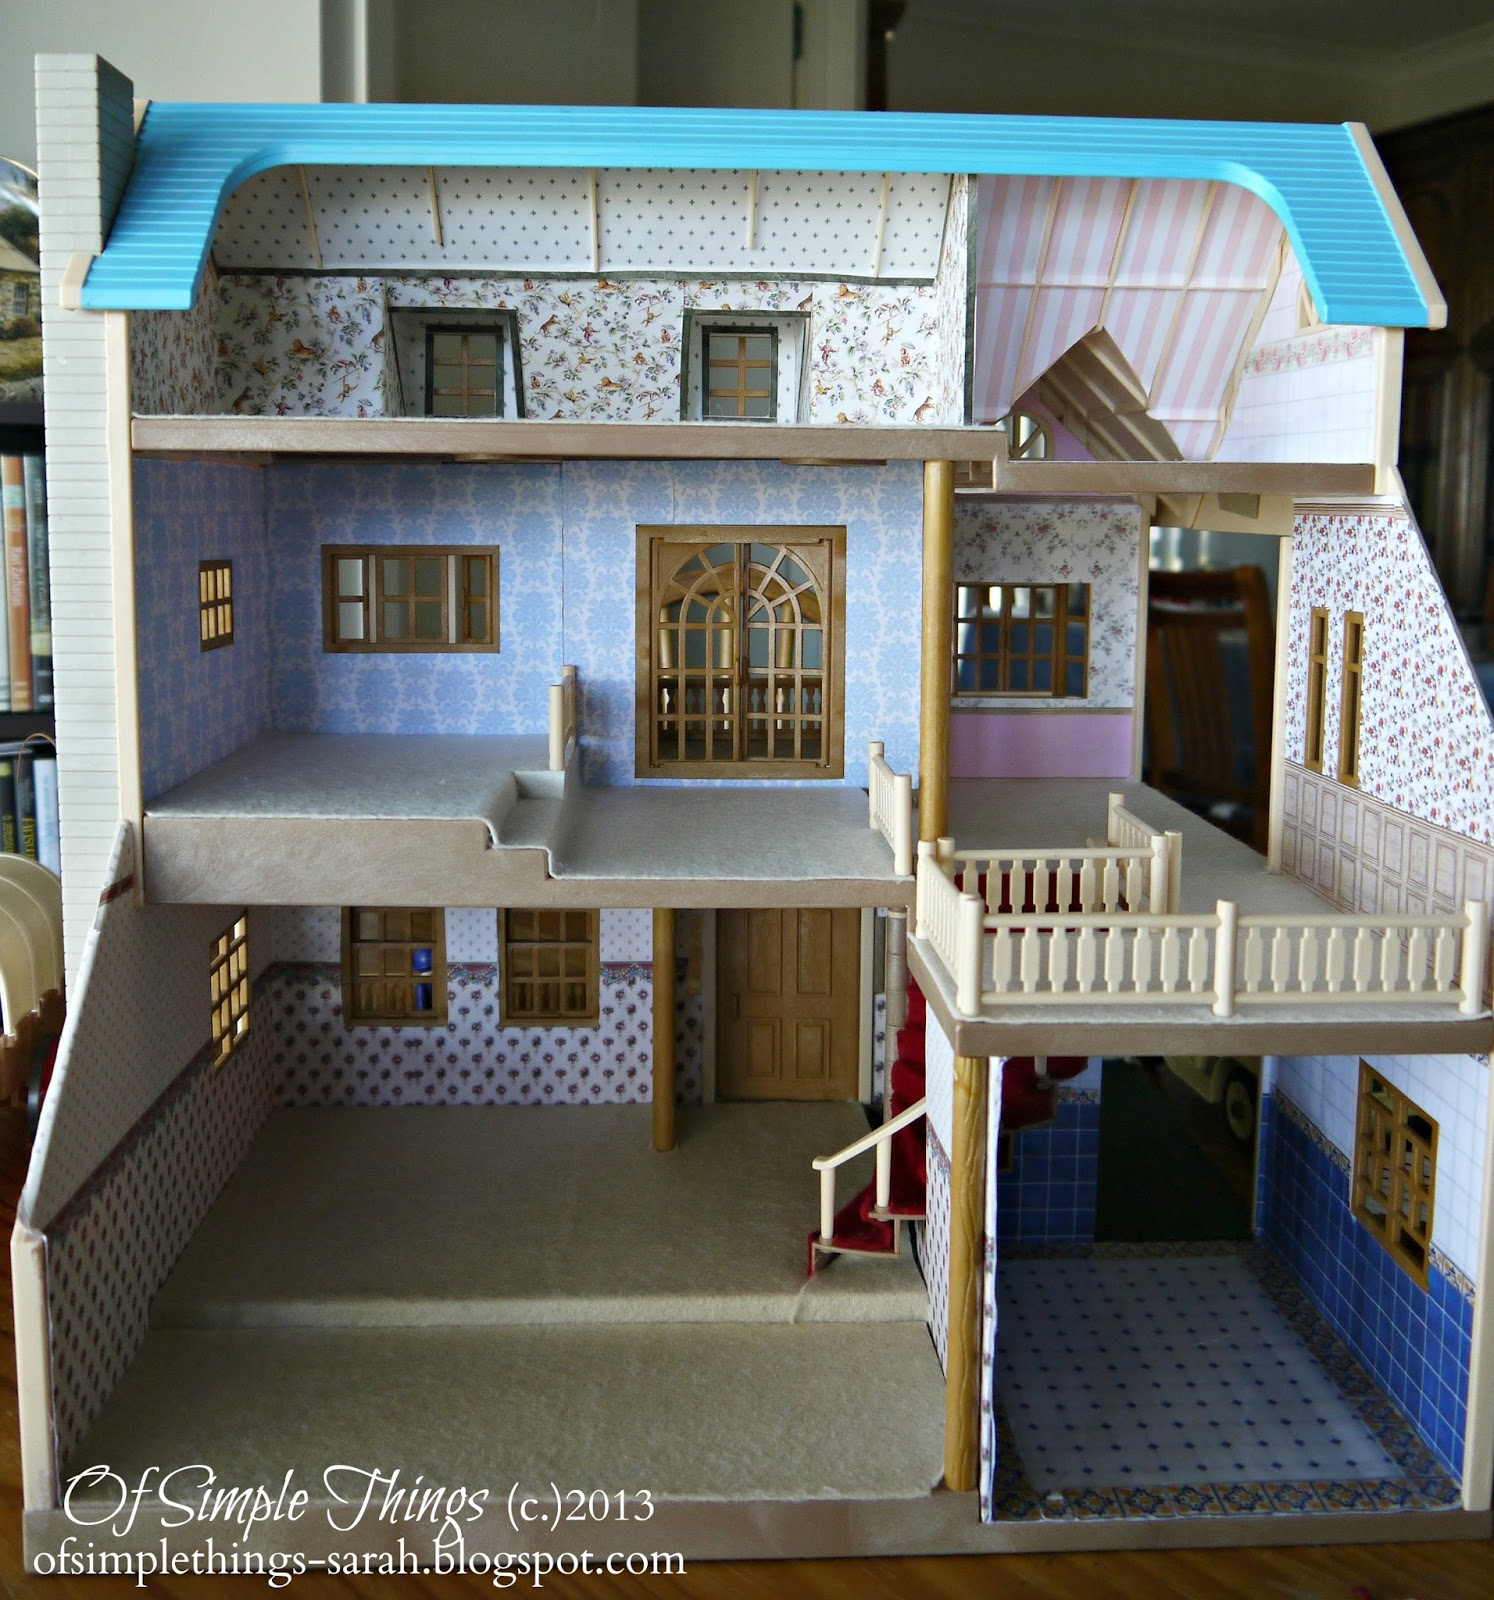 Of Simple Things: Dollhouse Decorating (Part 1)